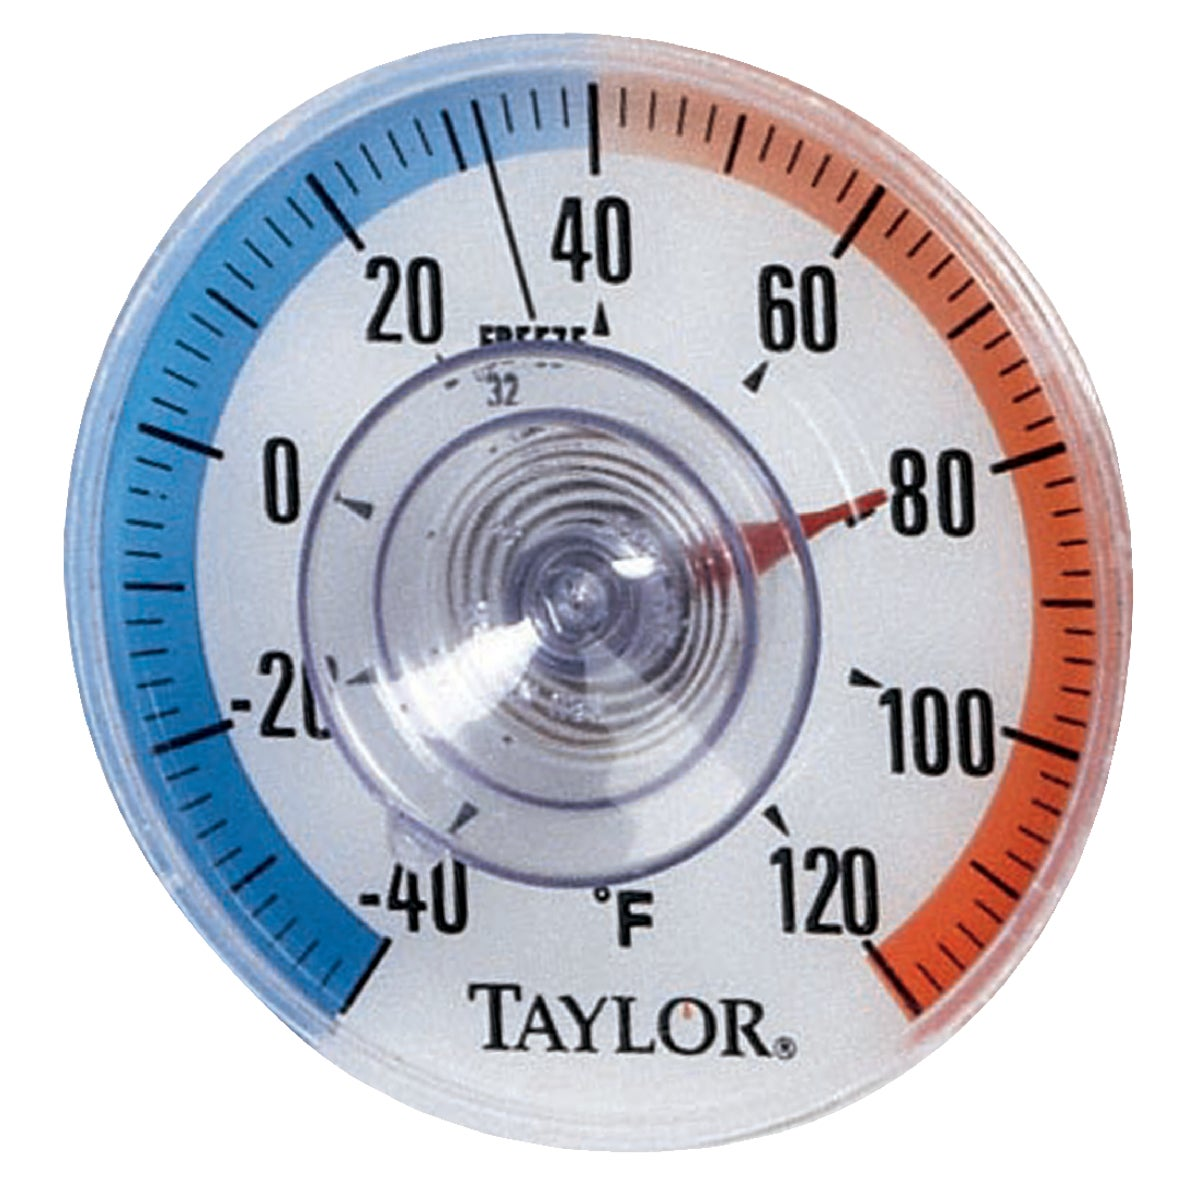 WINDOW THERMOMETER - 5321N by Taylor Precision